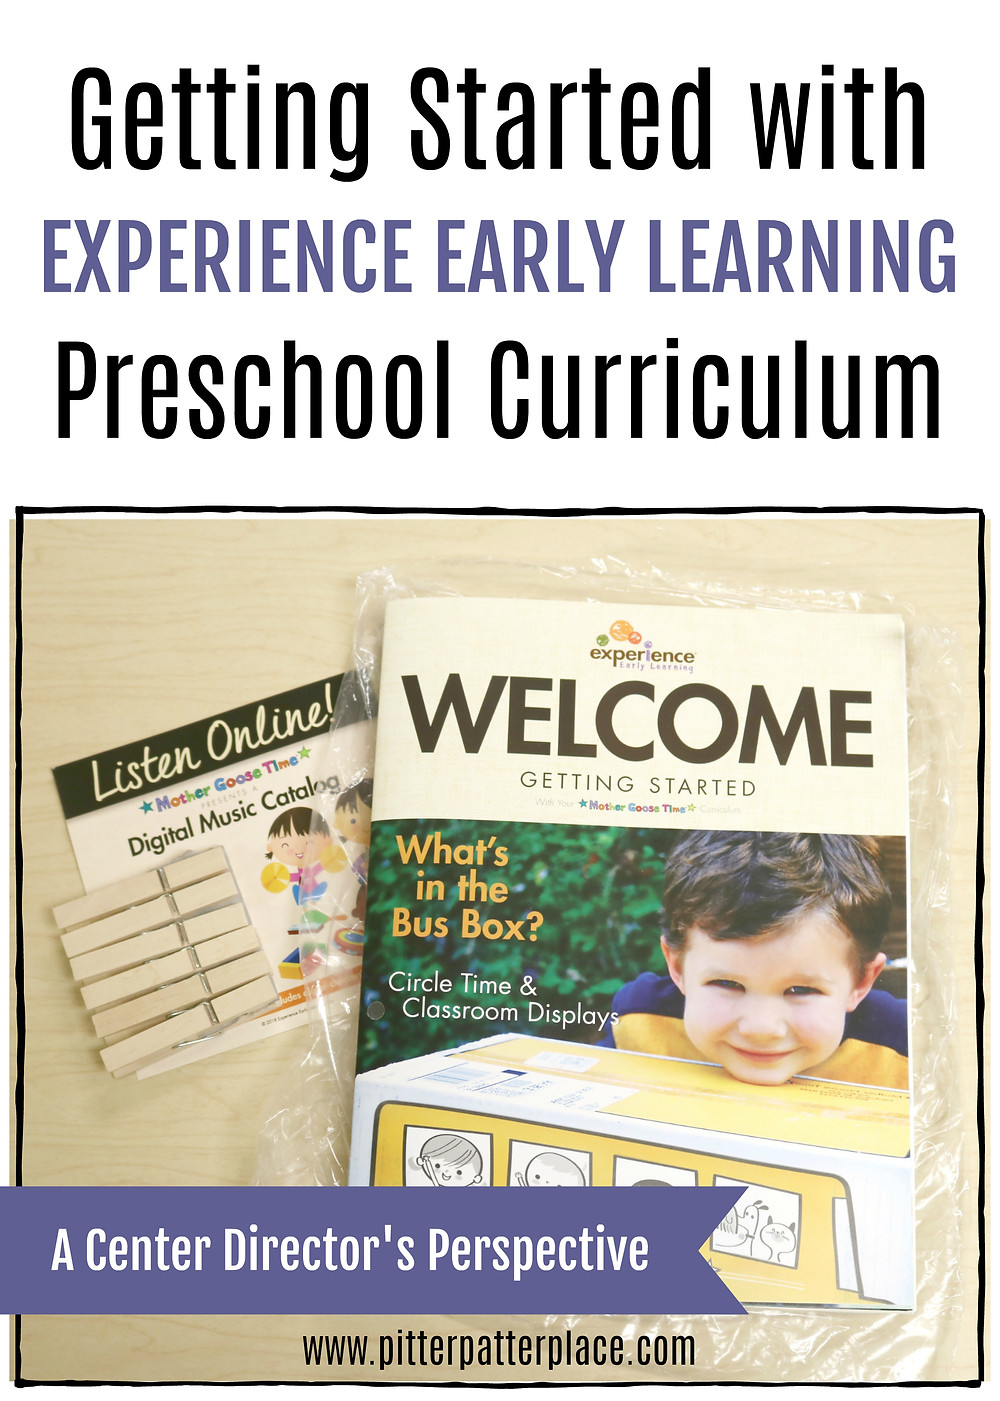 collage of welcome materials from Experience Early Learning with text title